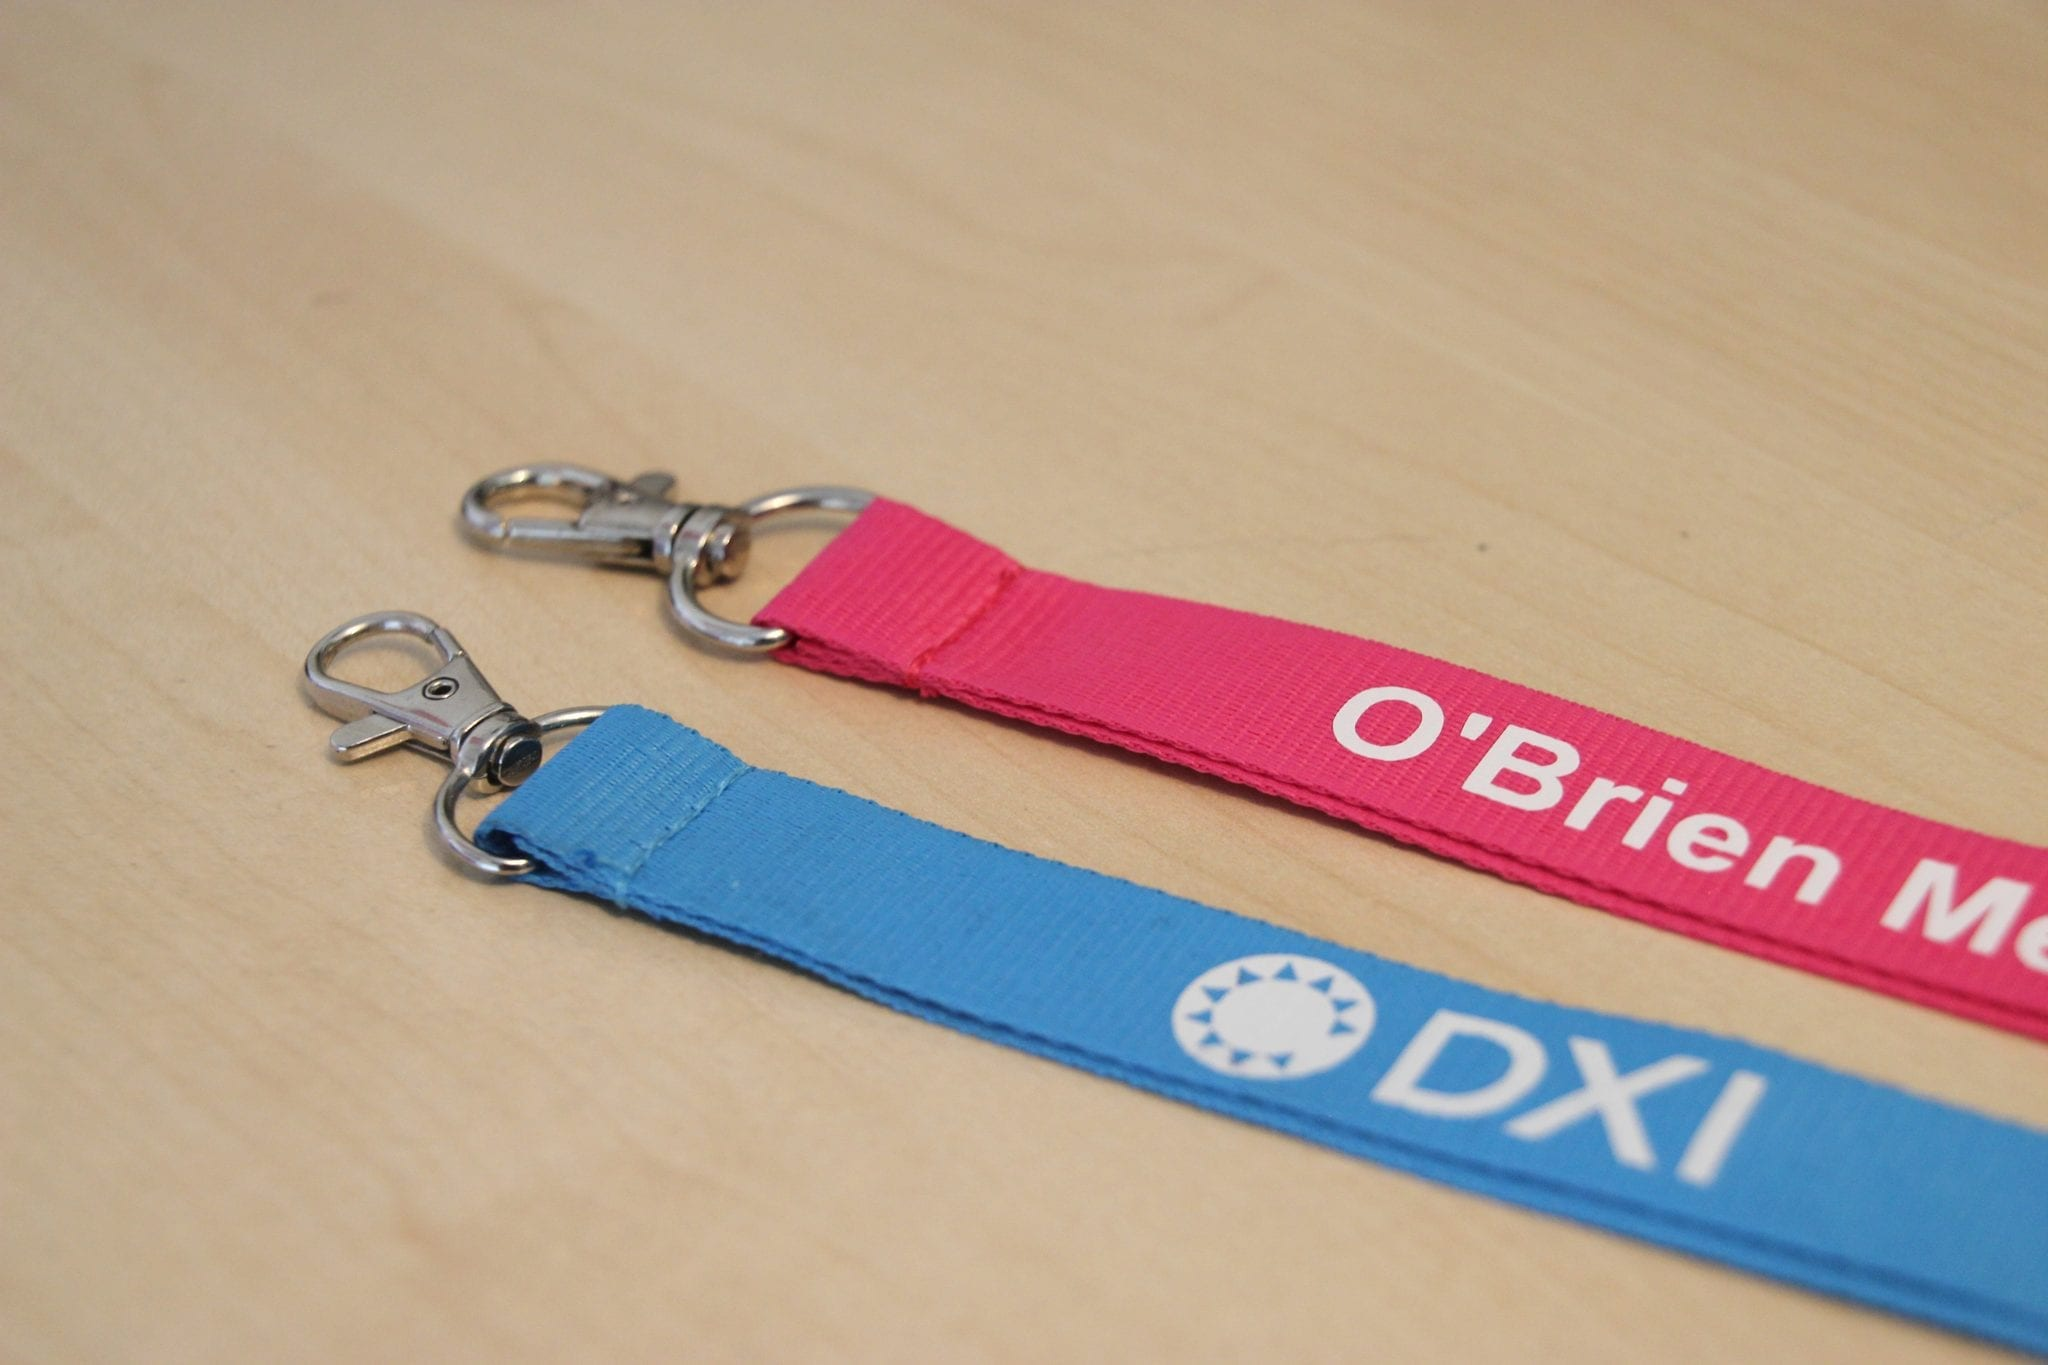 get-noticed-with-personalised-lanyards-photo-id-cards.png